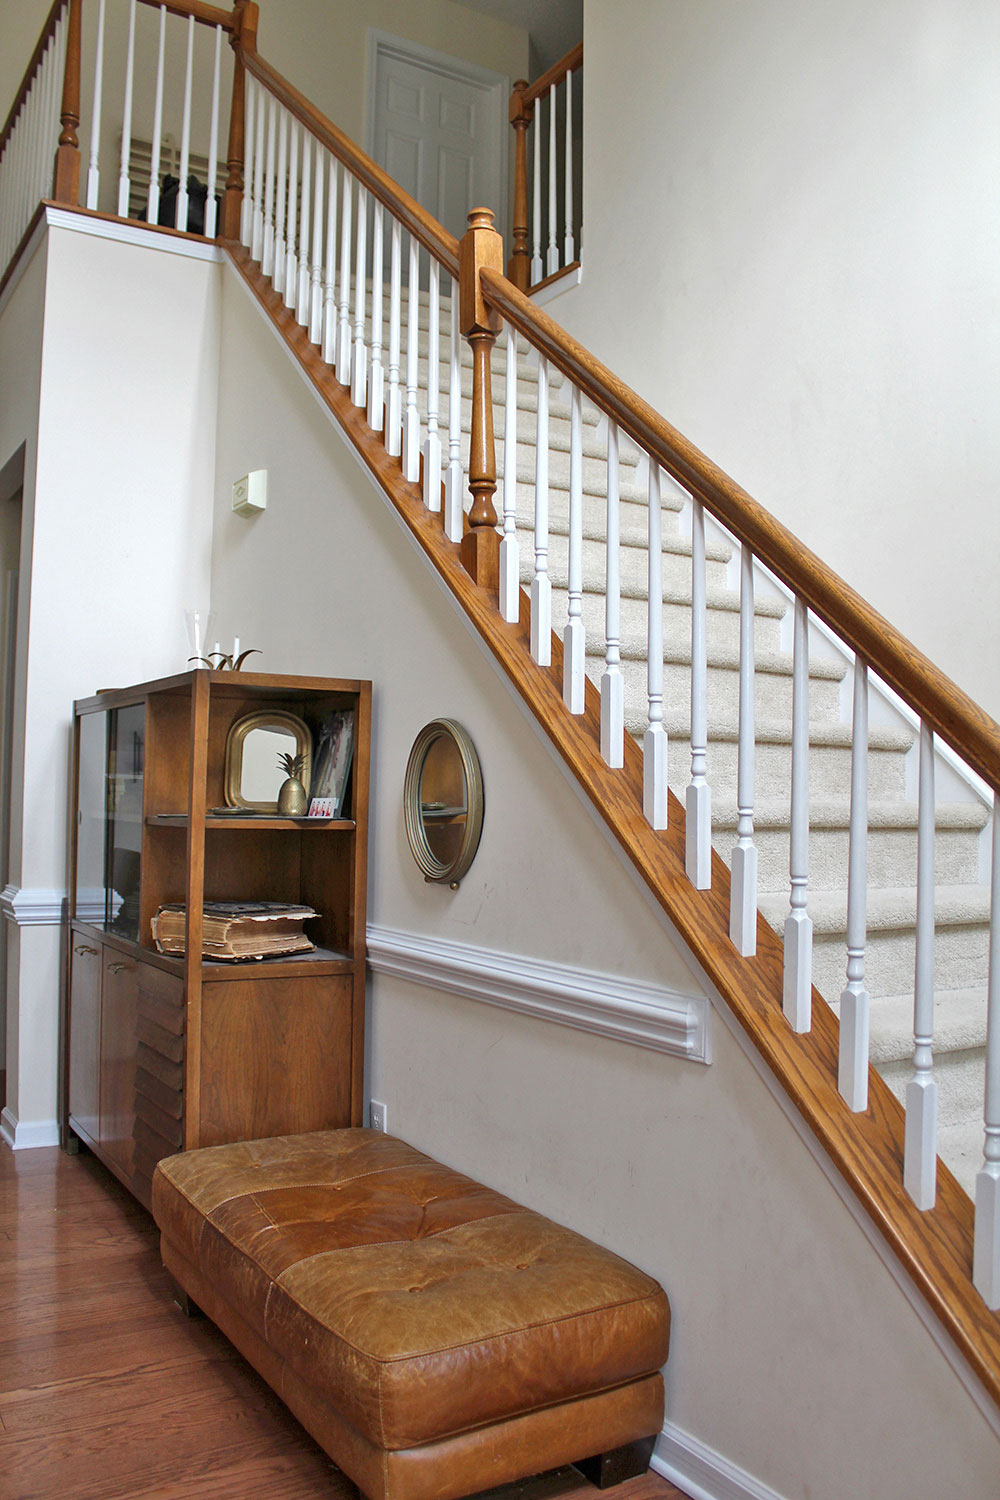 staircase & home entryway with high ceilings (before makeover)